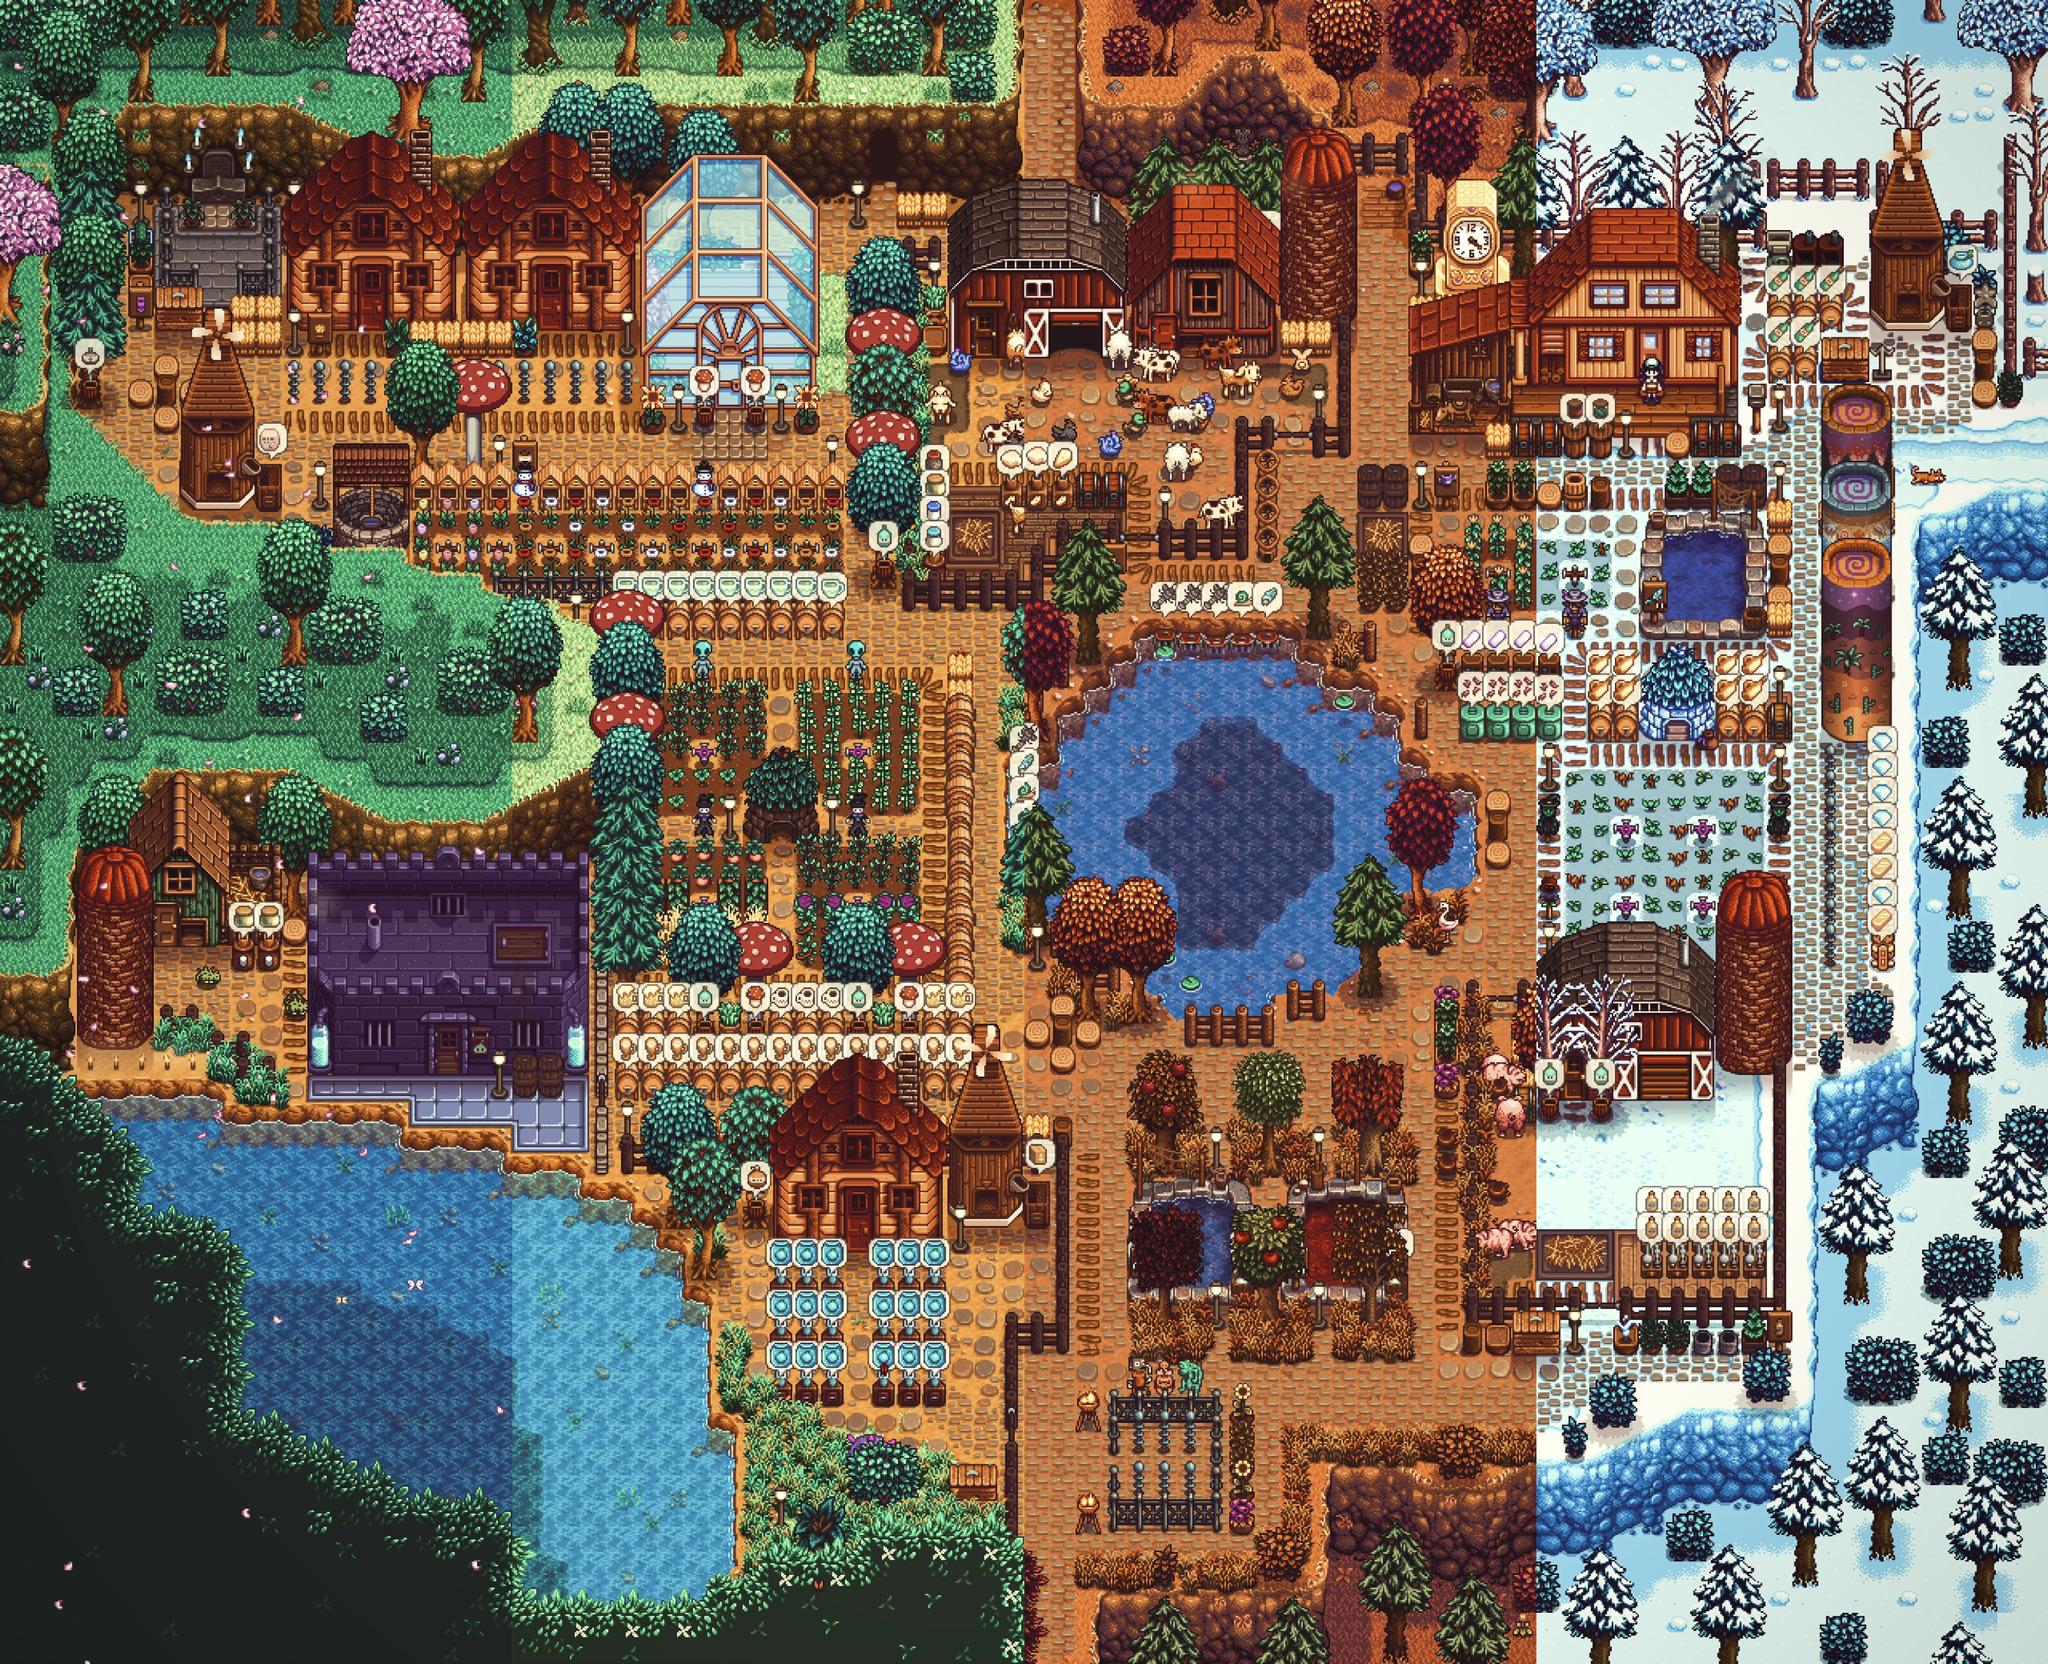 Four seasons in one image shows how beautiful Stardew Valley's pixel art really is screenshot